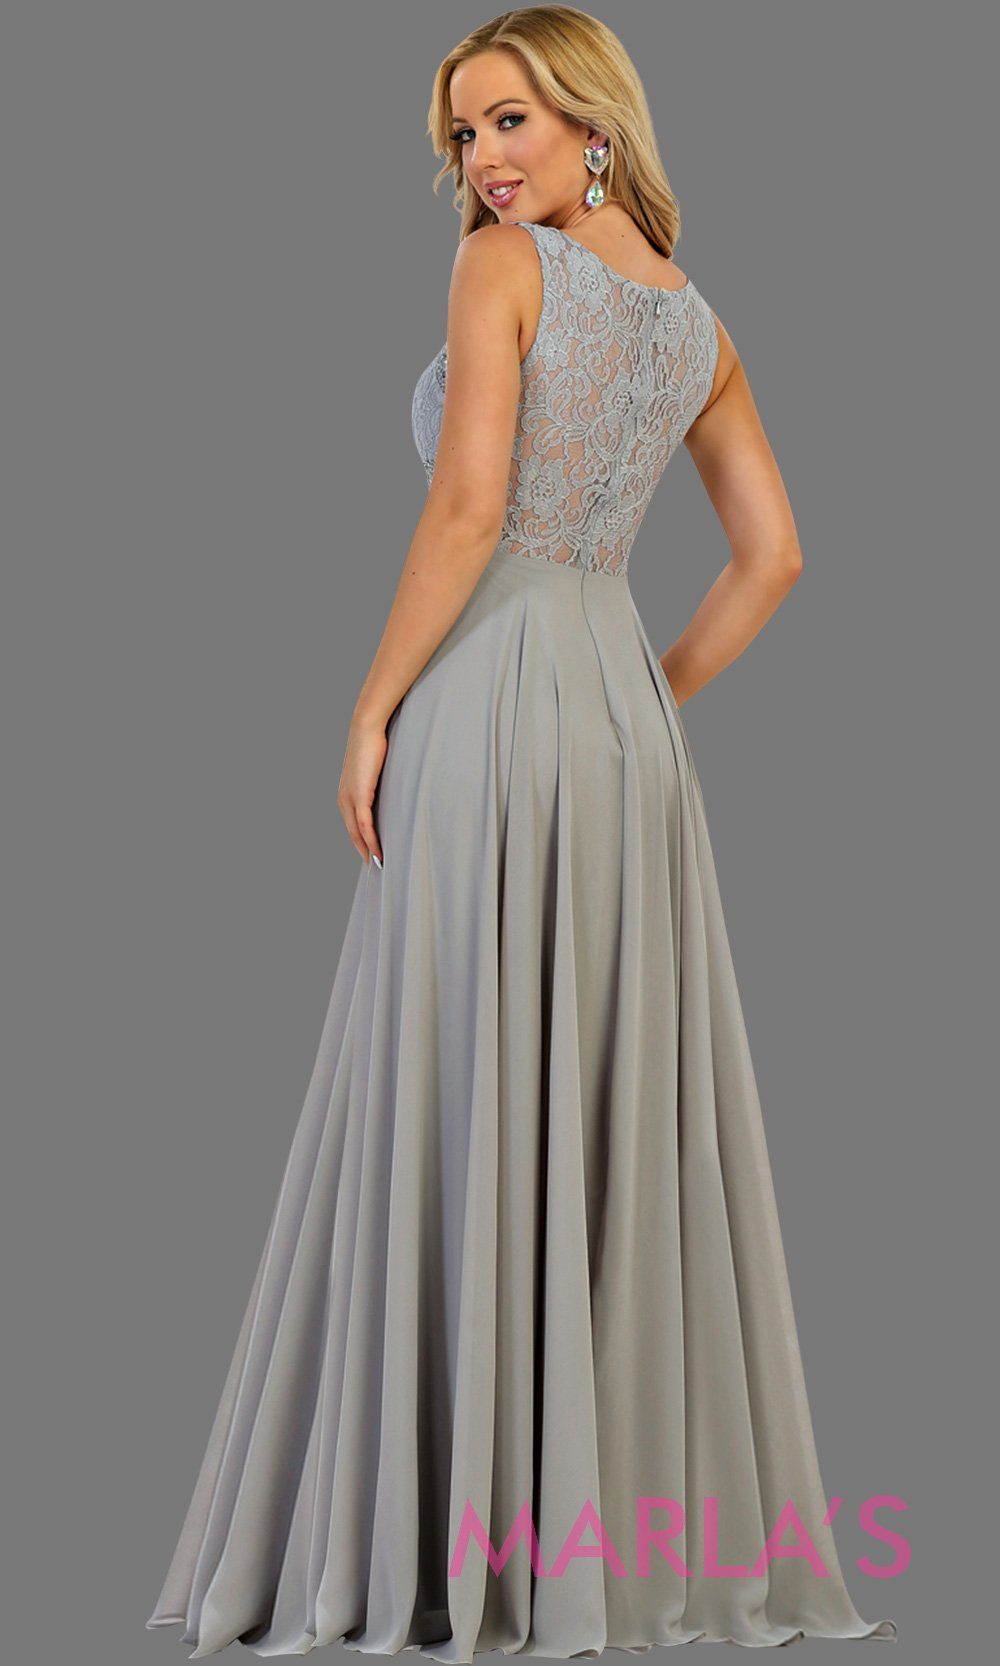 Back of Long light gray or silver flowy party dress with lace top and see thru waist and back. This gray dress is perfect for prom, formal party, gala event, light gray flowy wedding guest dress, modest gown, bridesmaid. Available in plus sizes.